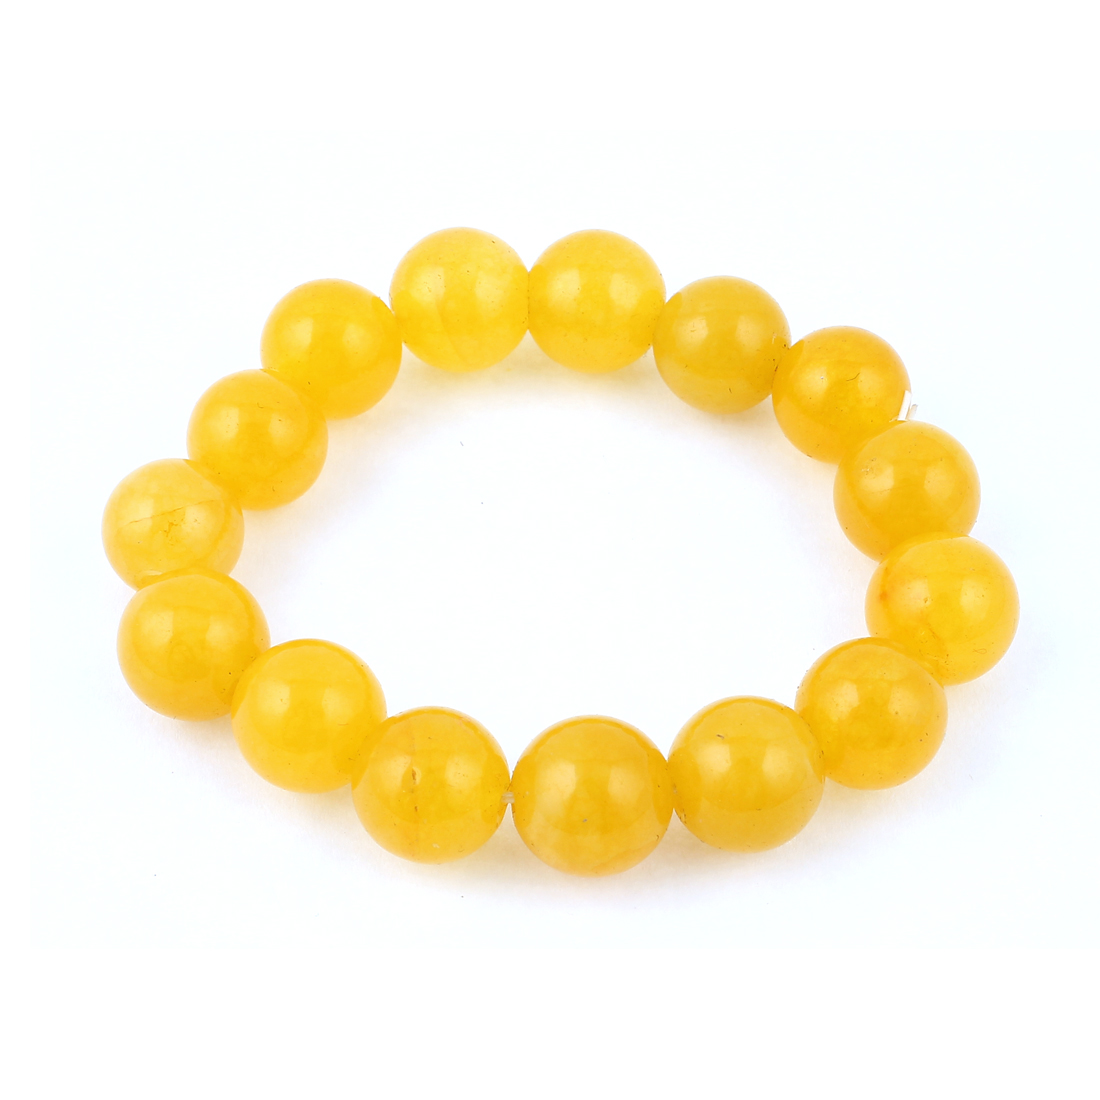 Lady Round Faux Jade Decor Elastic Wrist Stretchy Bangle Bracelet Yellow